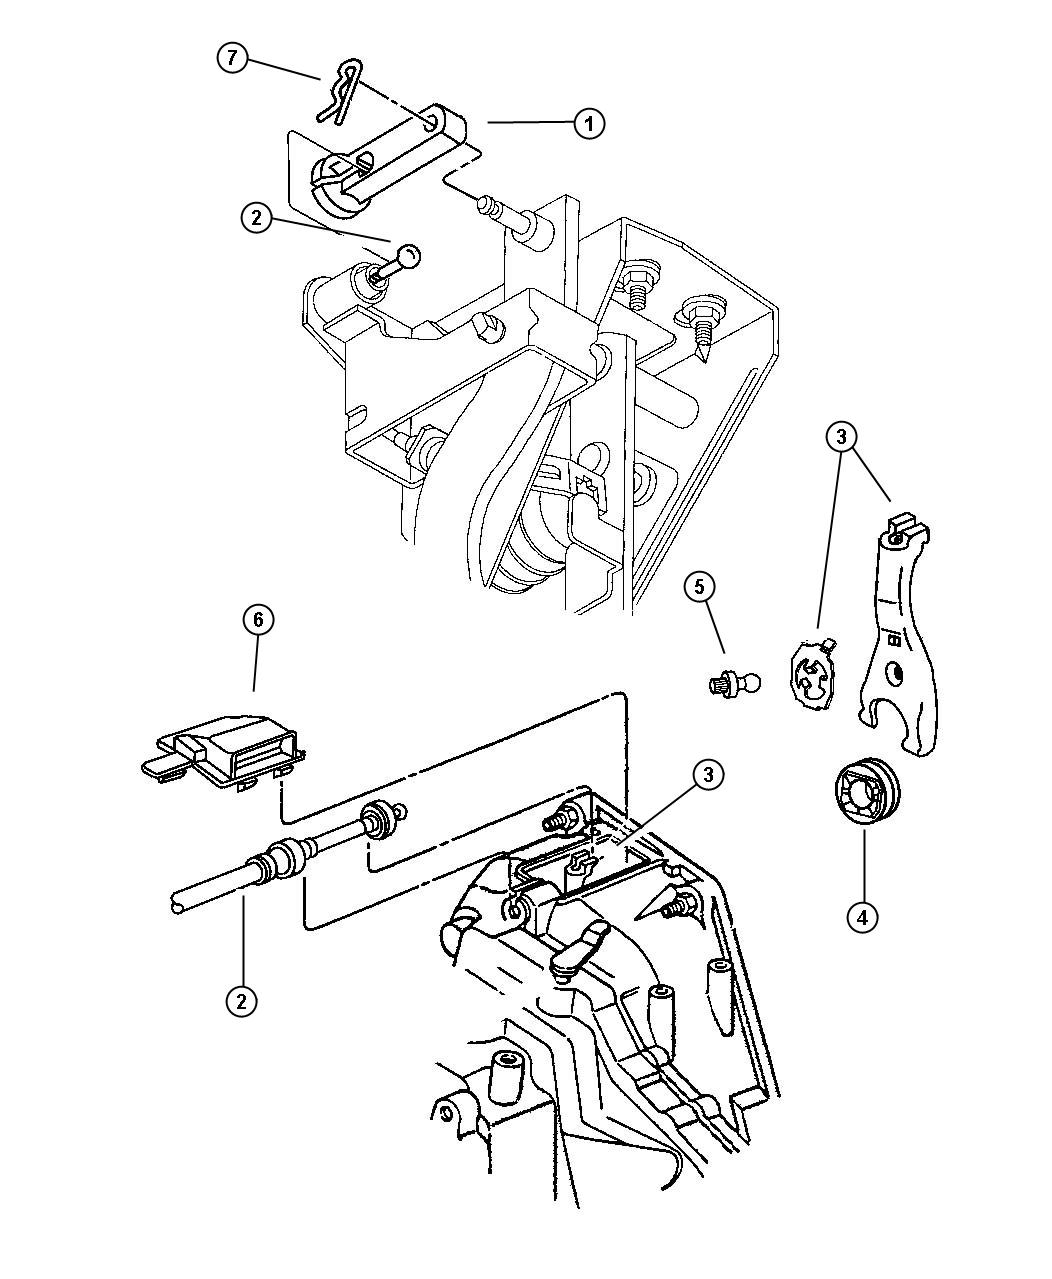 2004 suzuki valve cover diagrams